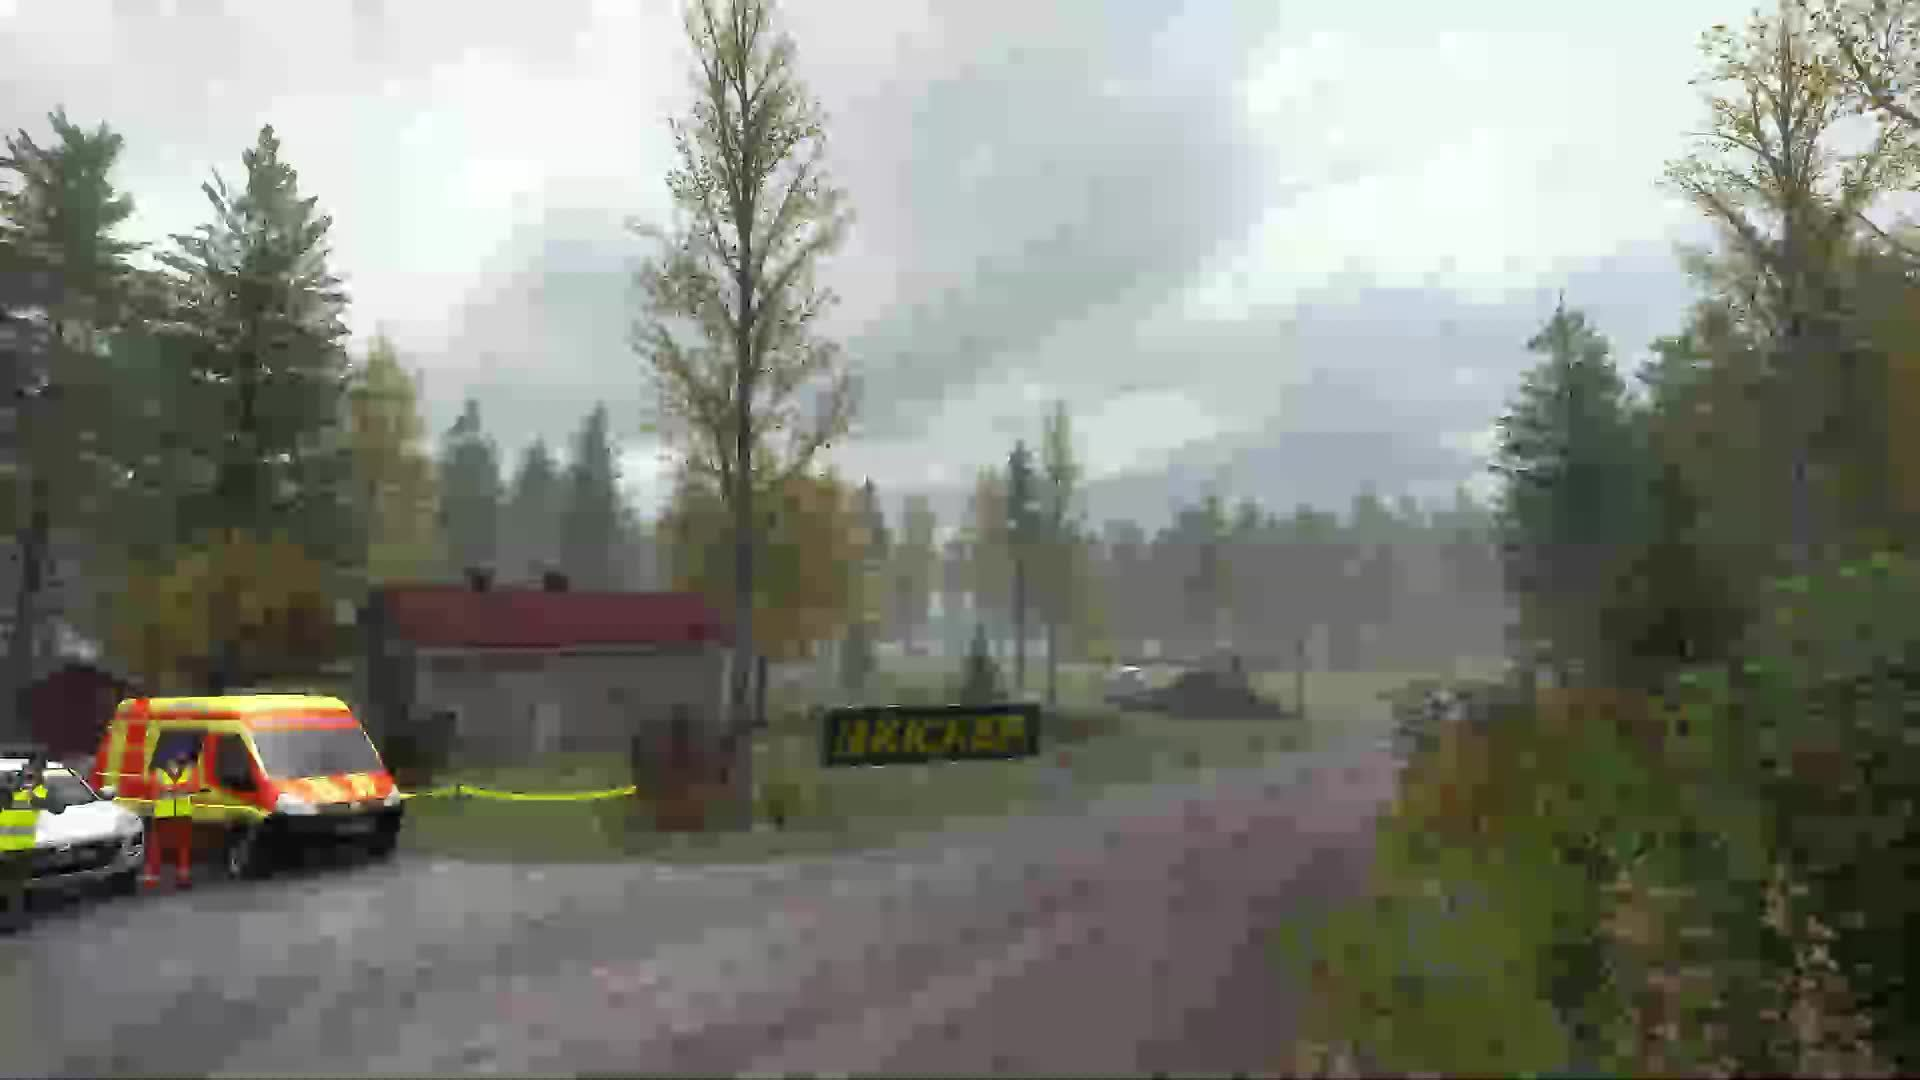 dirtgame, Perfect curve GIFs